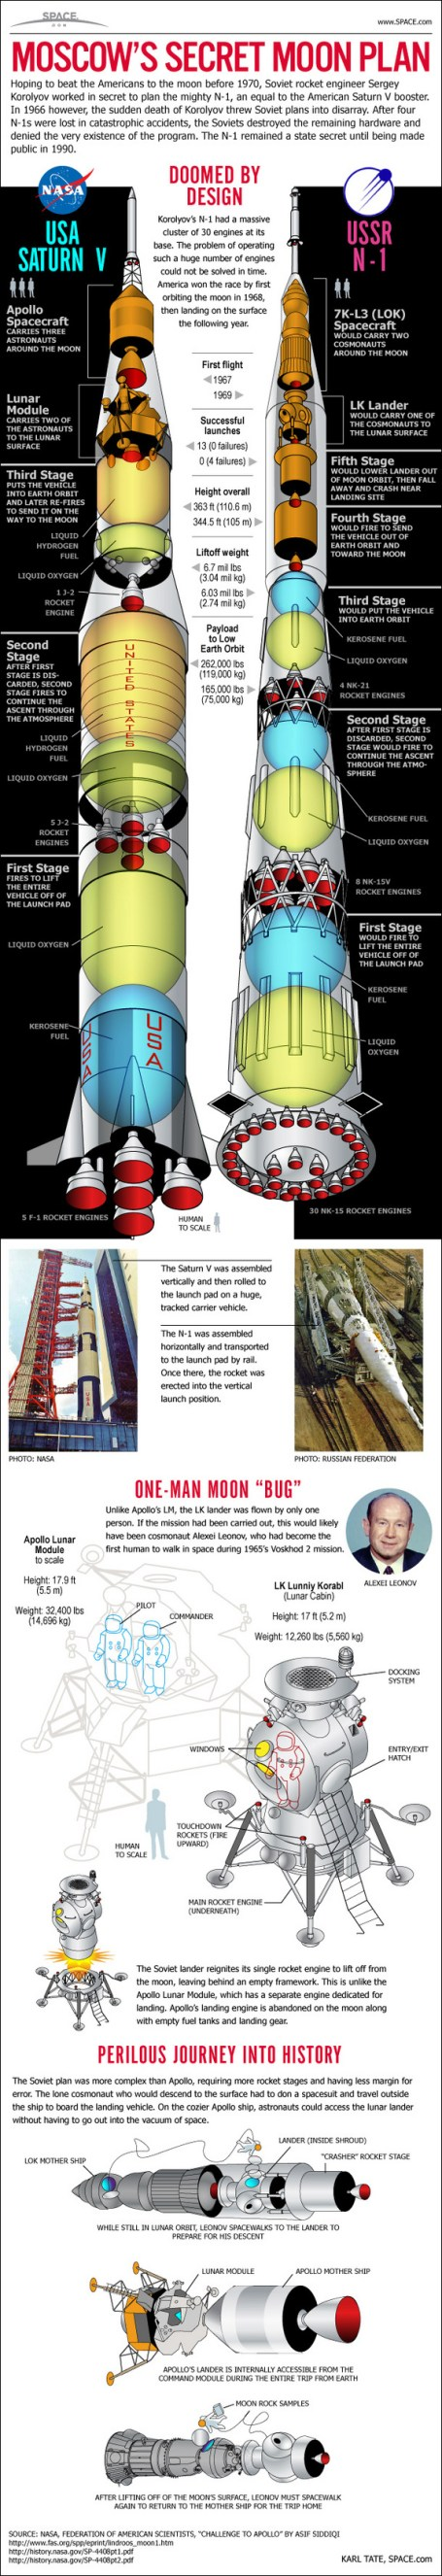 See how the former Soviet Union planned to match the U.S. Apollo moon landings with the N-1 rocket in this infographc.